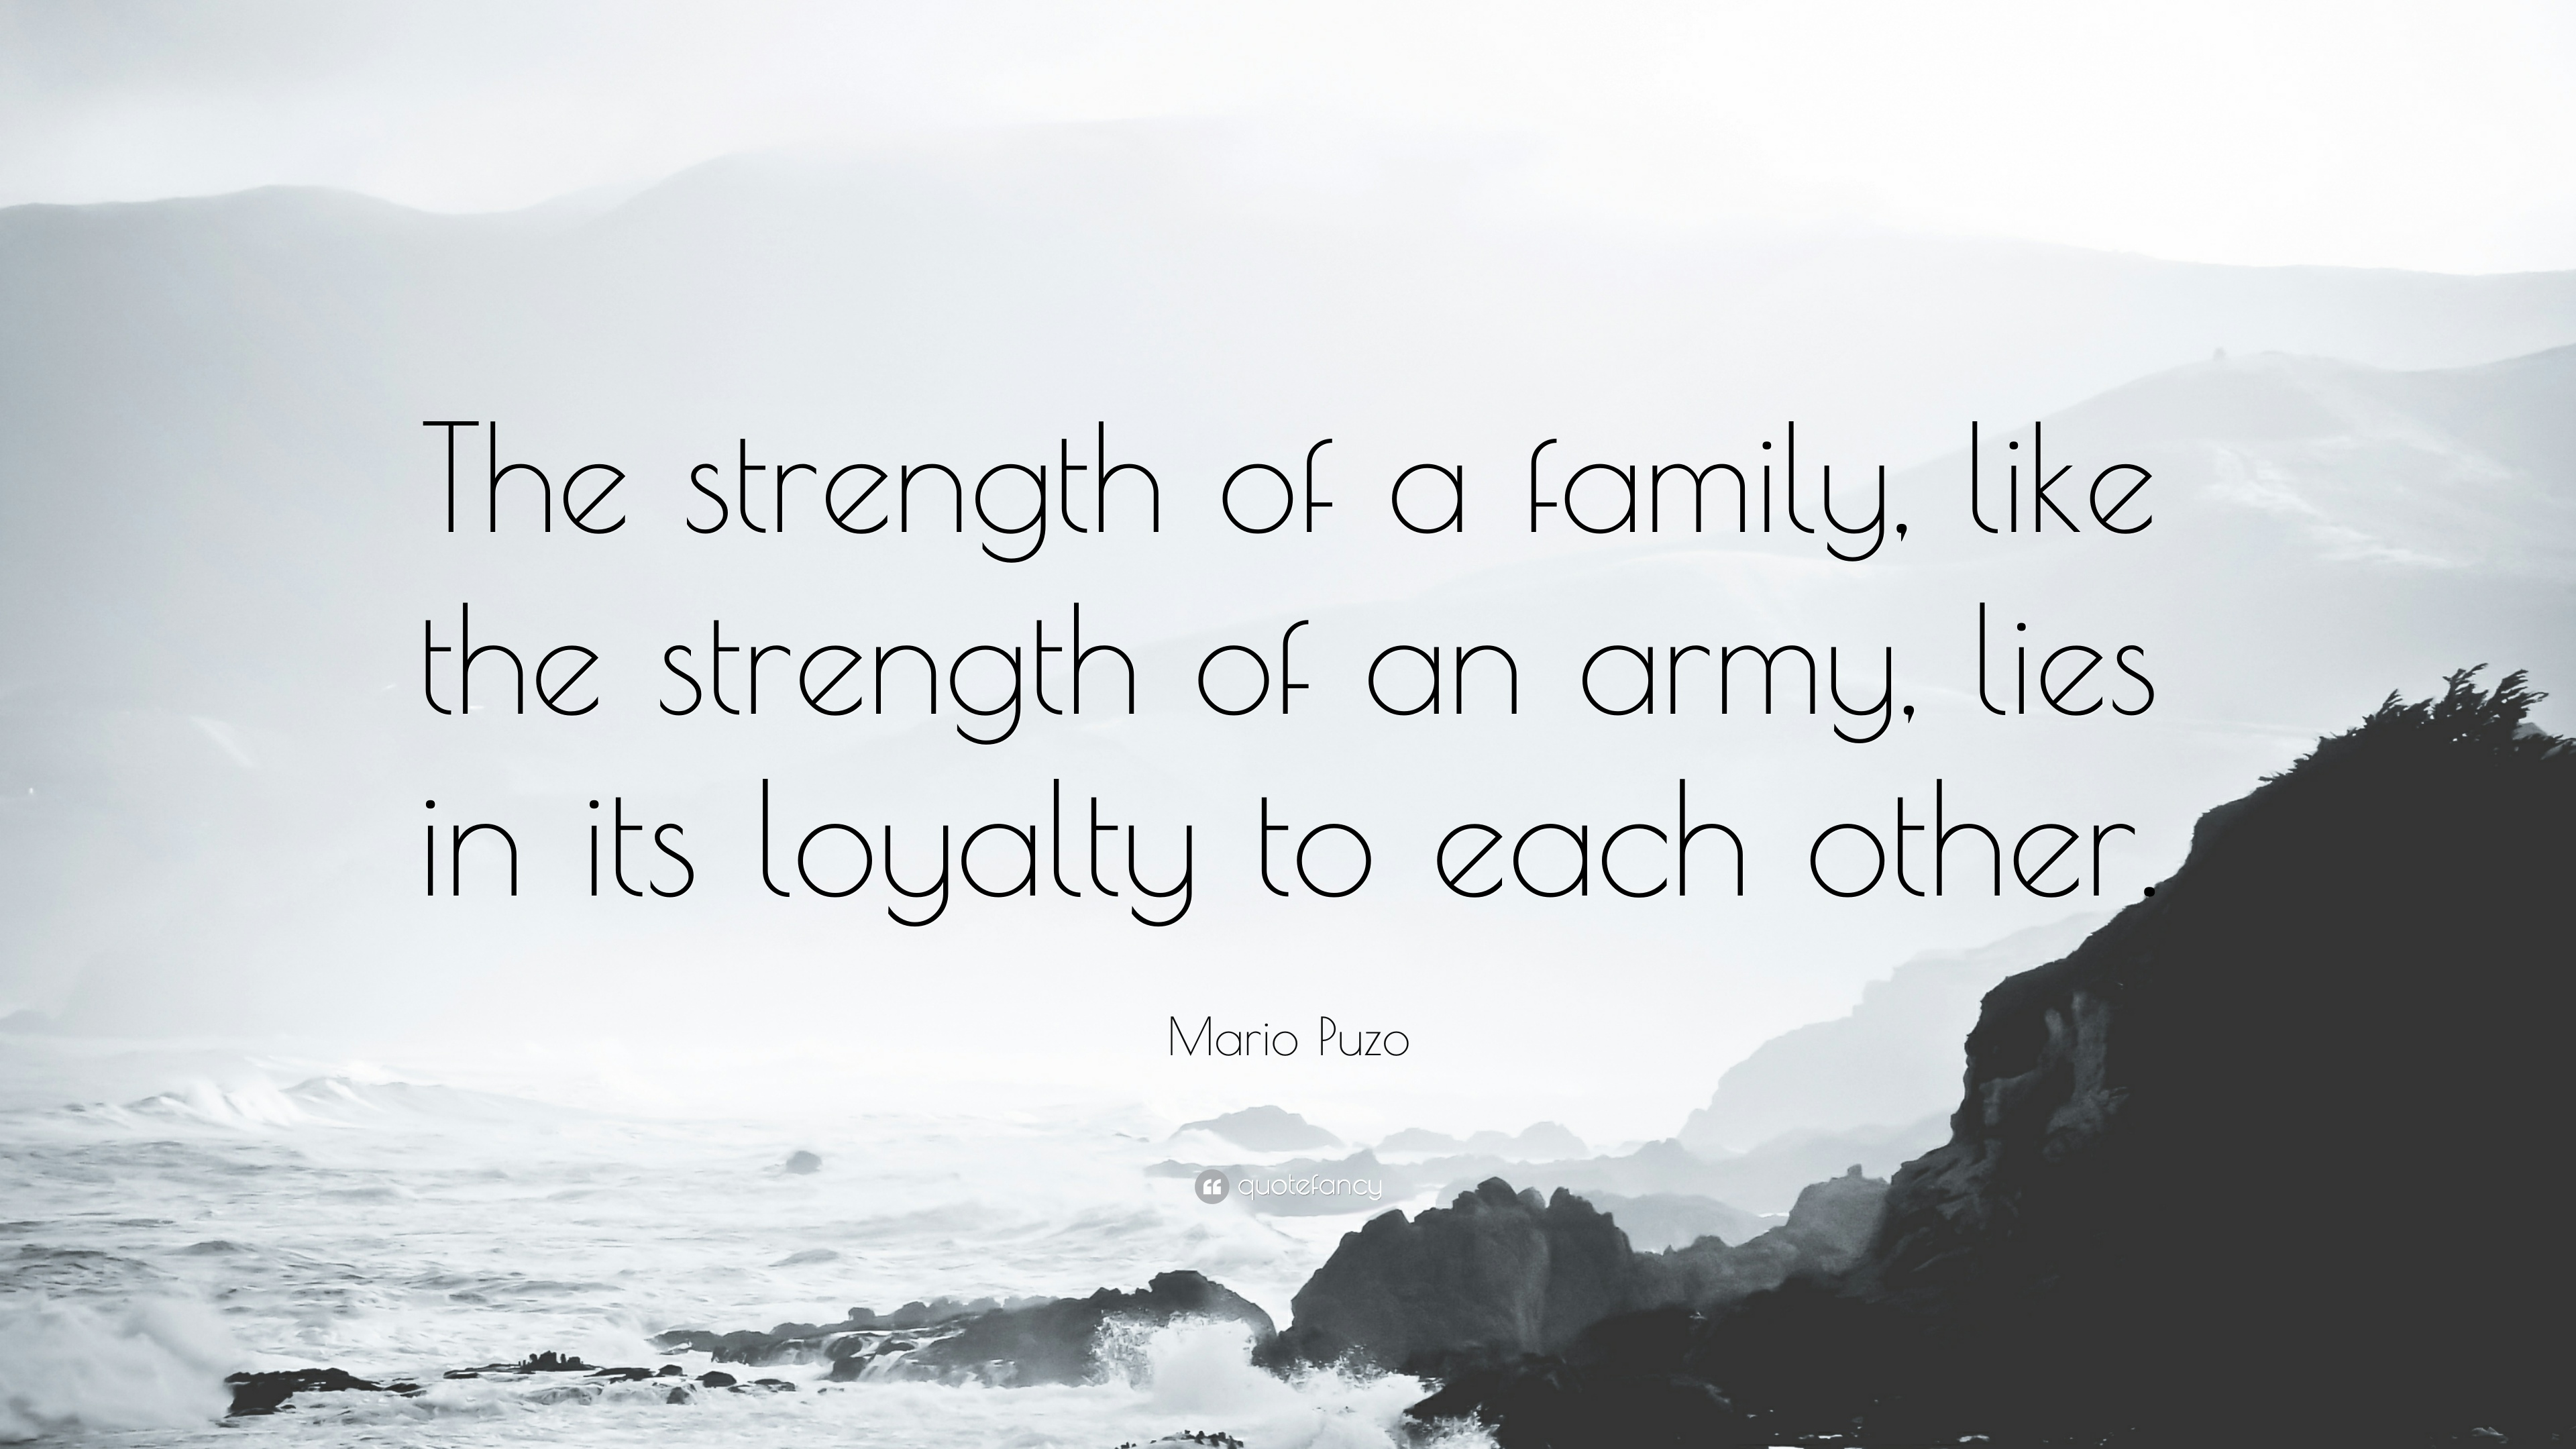 Mario Puzo Quote: U201cThe Strength Of A Family, Like The Strength Of An